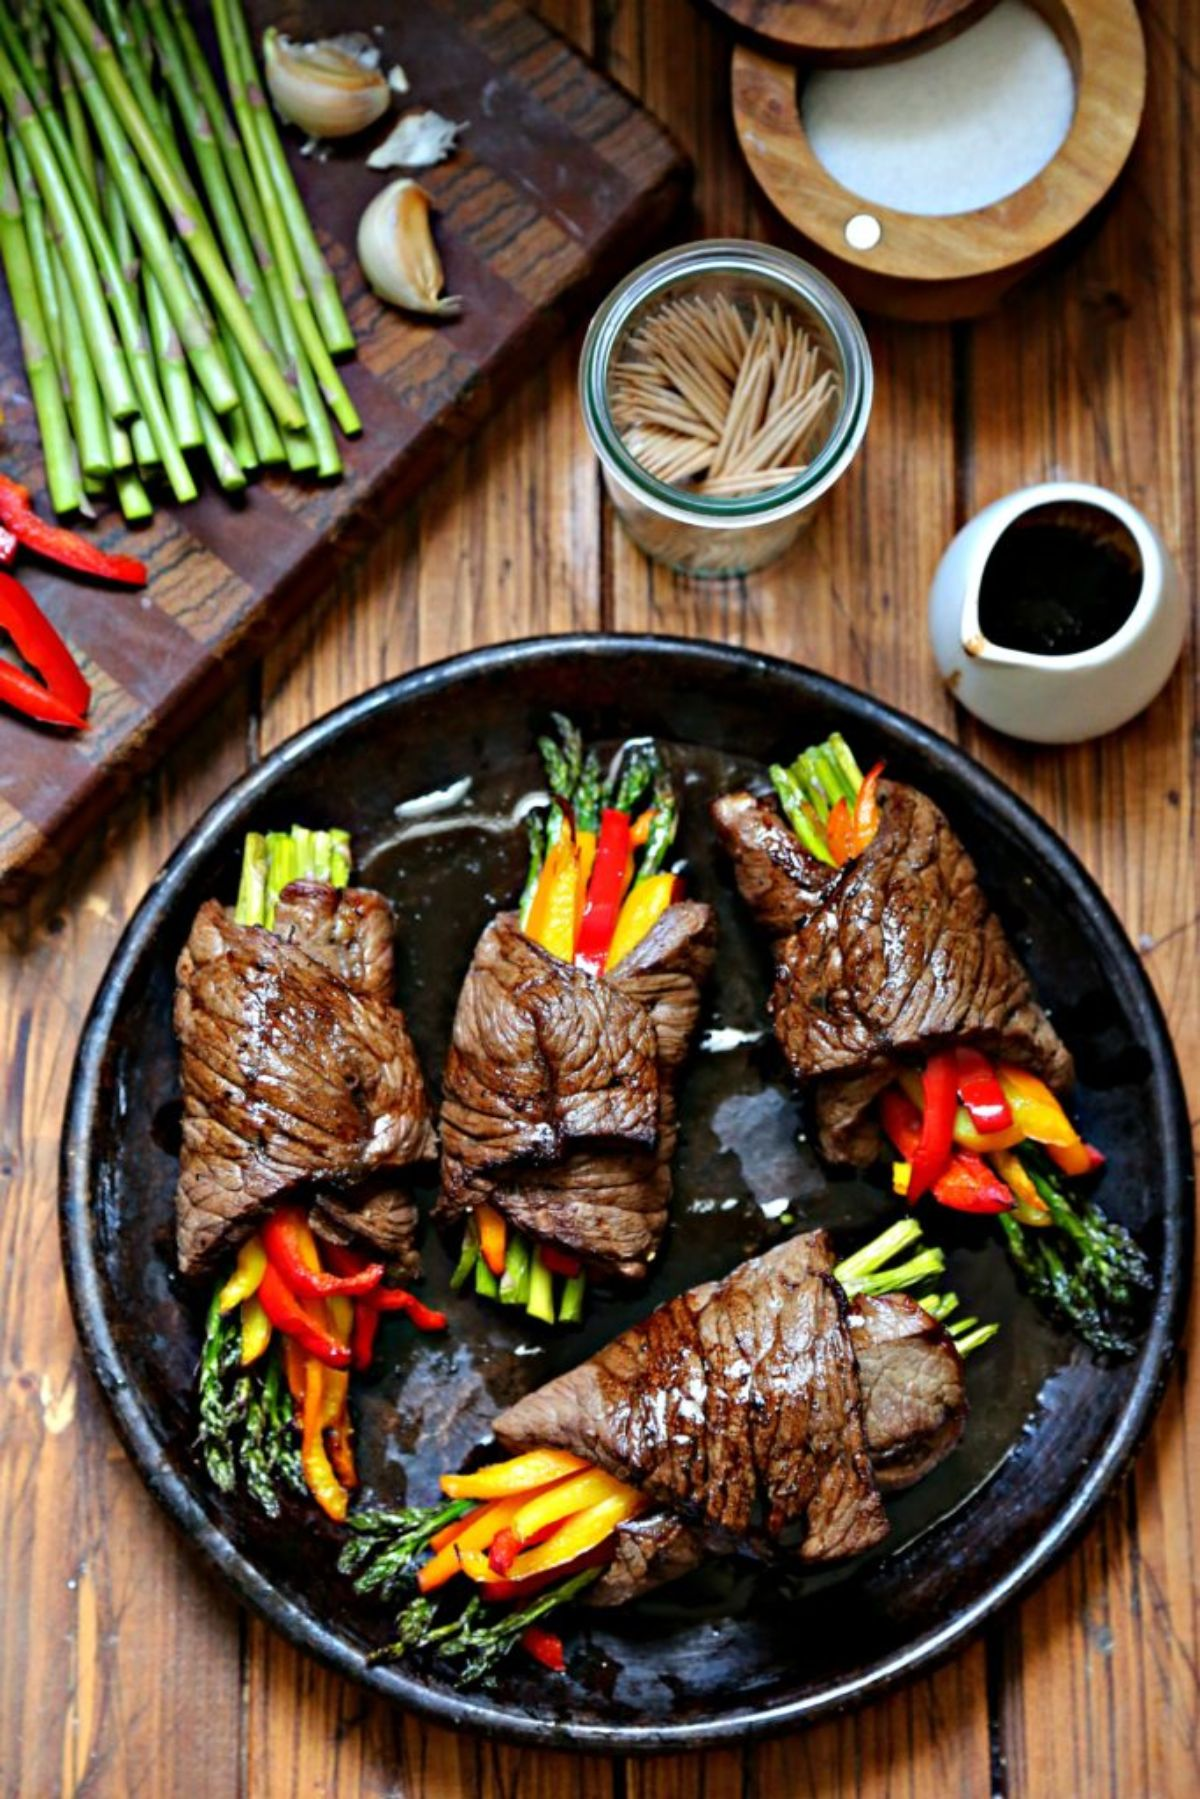 A dark wooden tale has a chopping board on the top left filled with asparagus, sliced peppers and garlic cloves. On the top right is a woodean bowl full of salt, a glass jar full of toothpicks and a white jug full of sauce. At the bottom fo the shot is a dark round plate with 4 bundles of asparagus and pepper wrapped in steak slices.